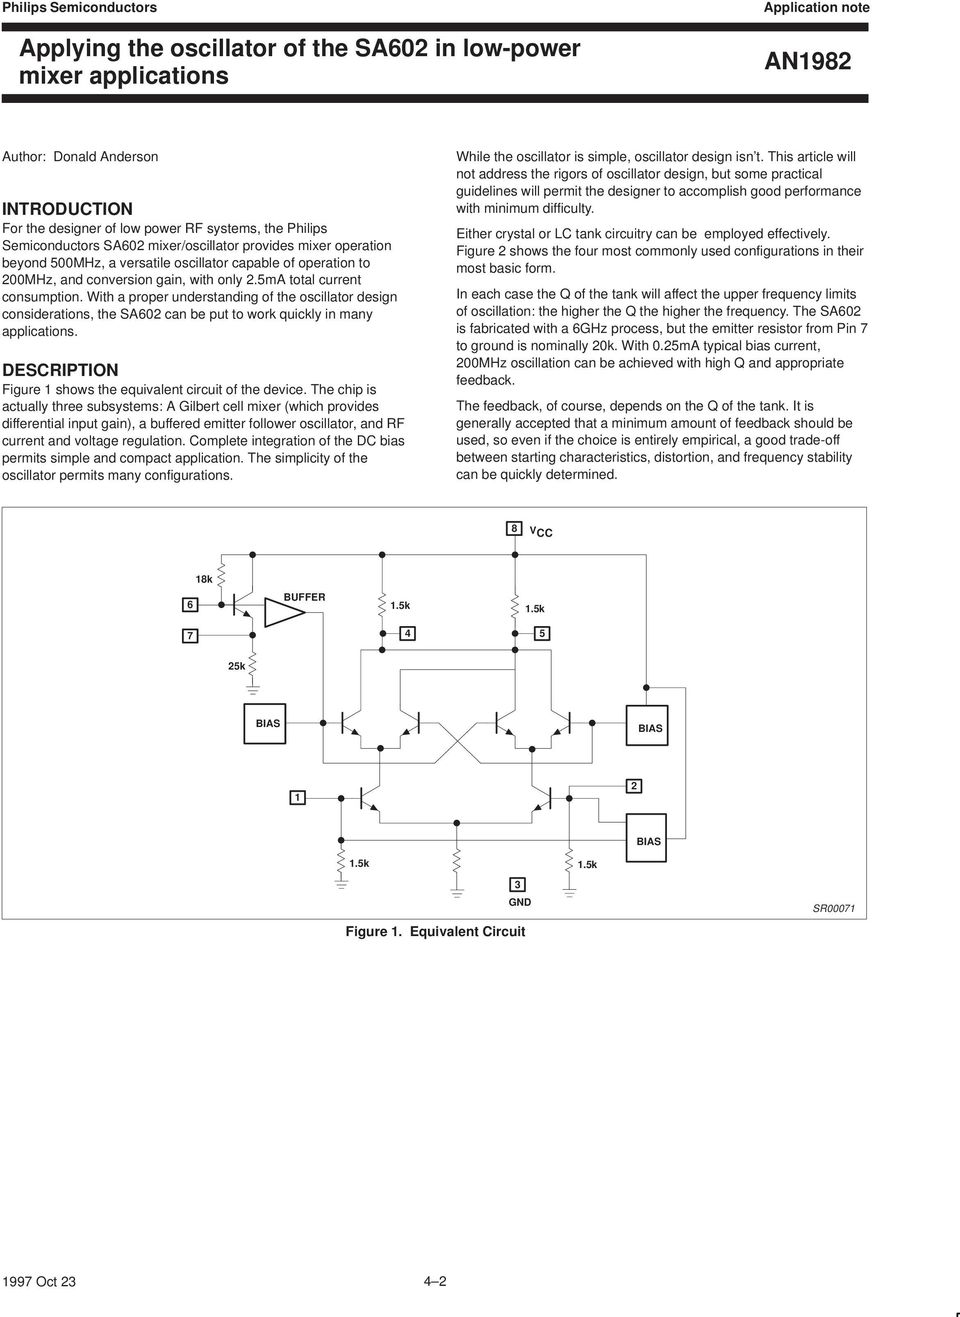 An1982 Applying The Oscillator Of Sa602 In Low Power Mixer 800watt Softstart Triac Light Dimmer Circuit Diagram Tradeofic With A Proper Understanding Design Considerations Sa02 Can Be Put To